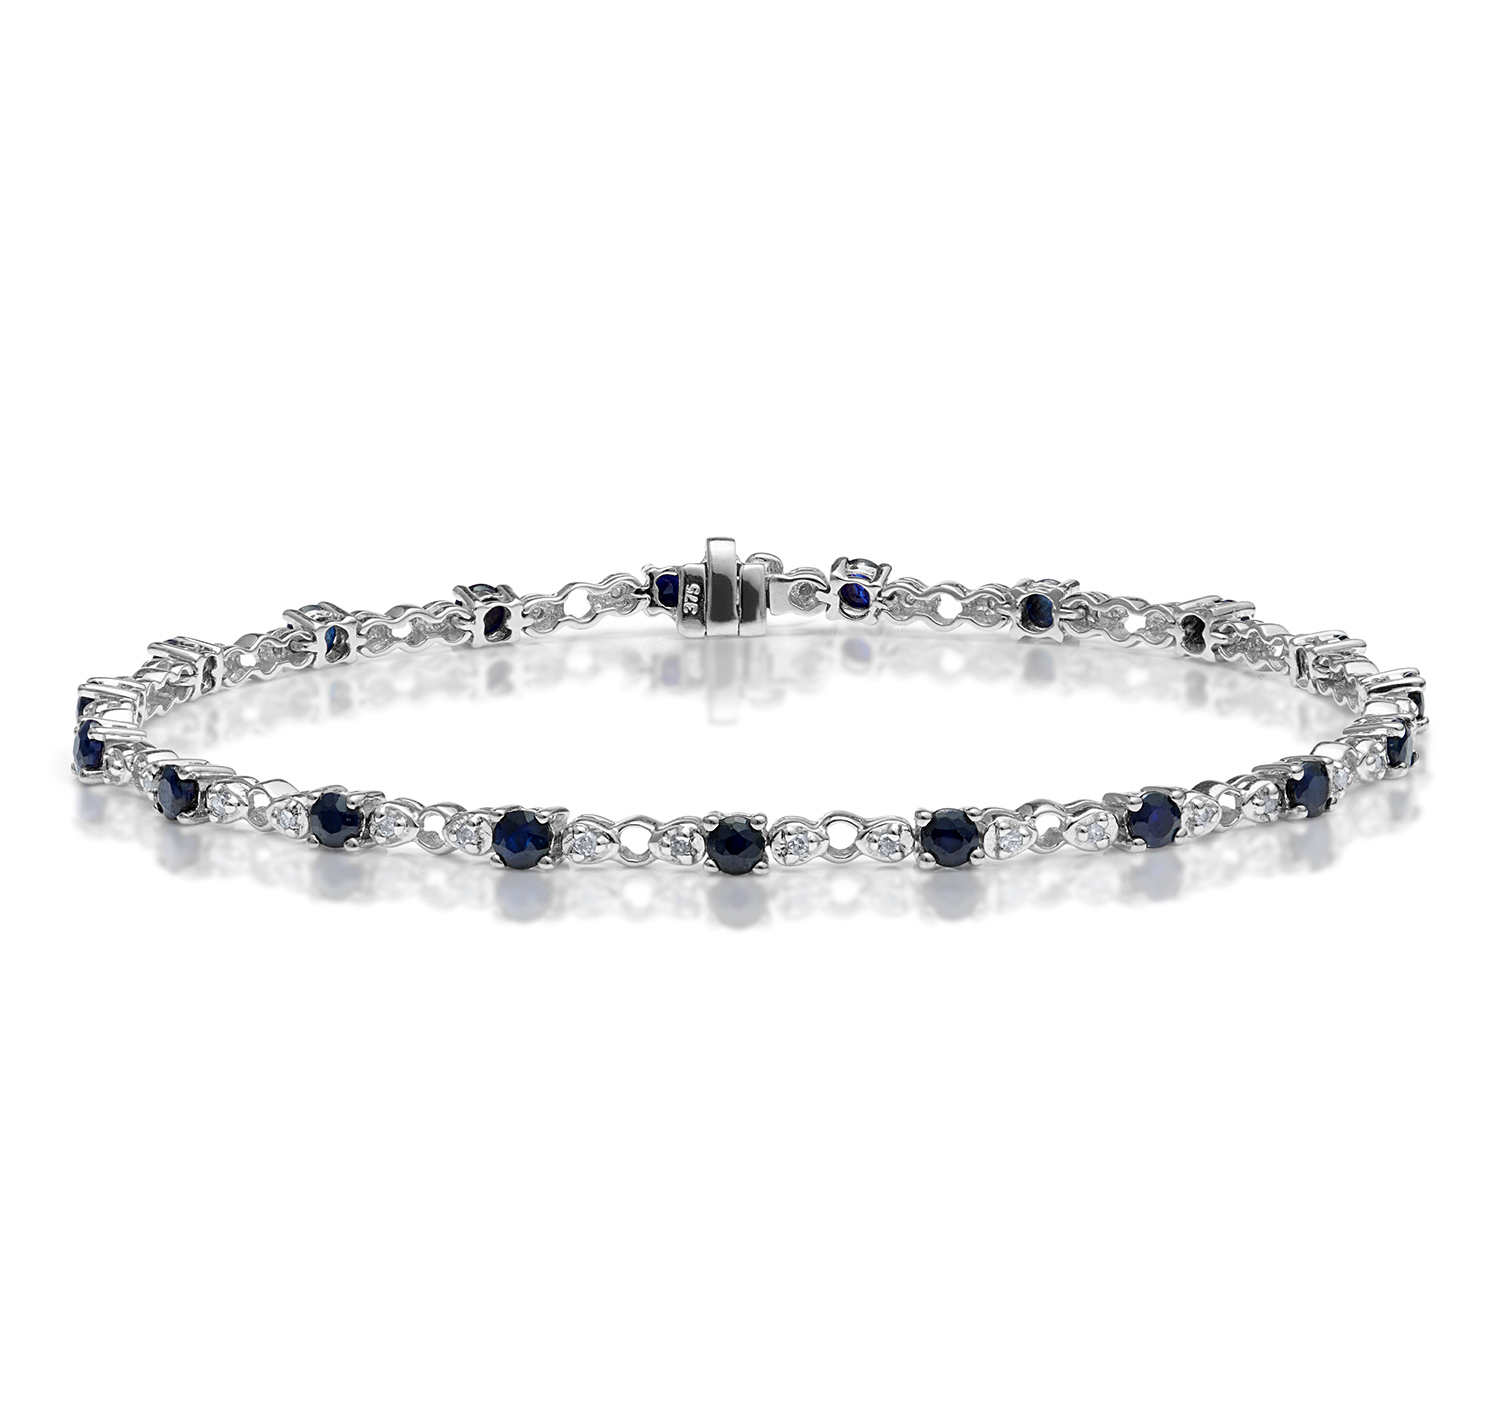 9K WHITE GOLD DIAMOND AND SAPPHIRE CLAW SET LINK BRACELET